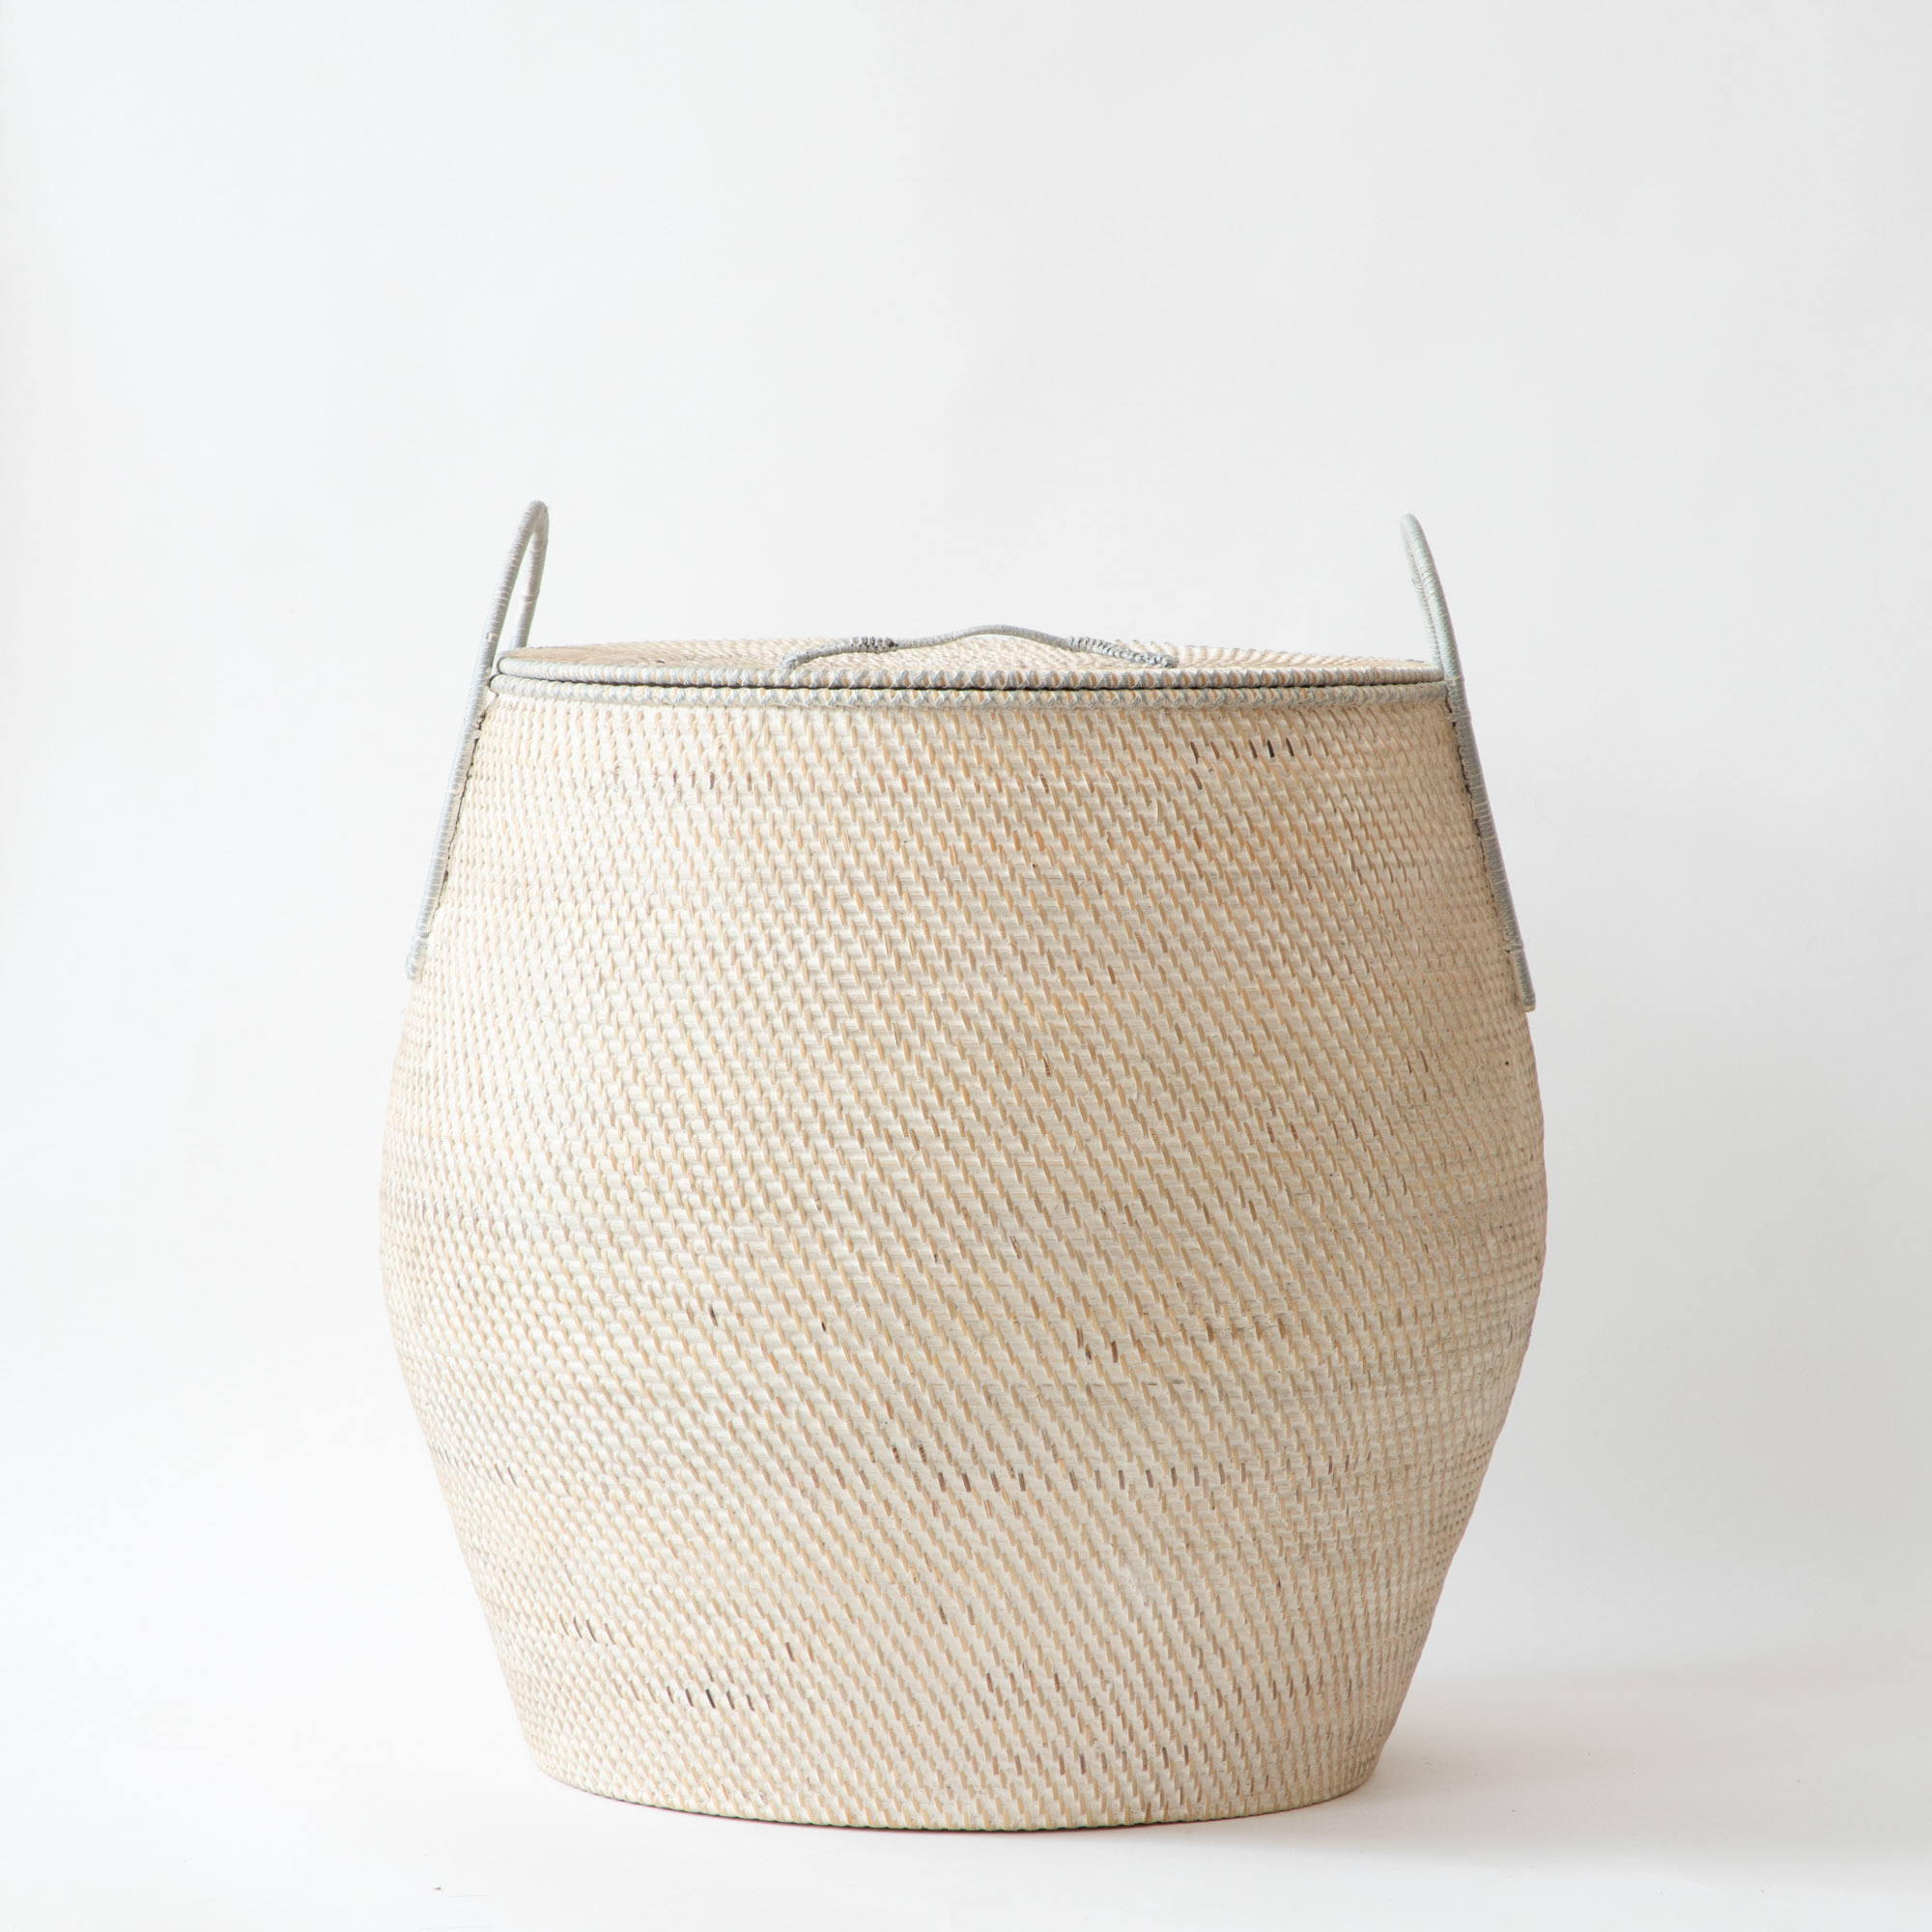 Hata Islander Pot with Grab Handles